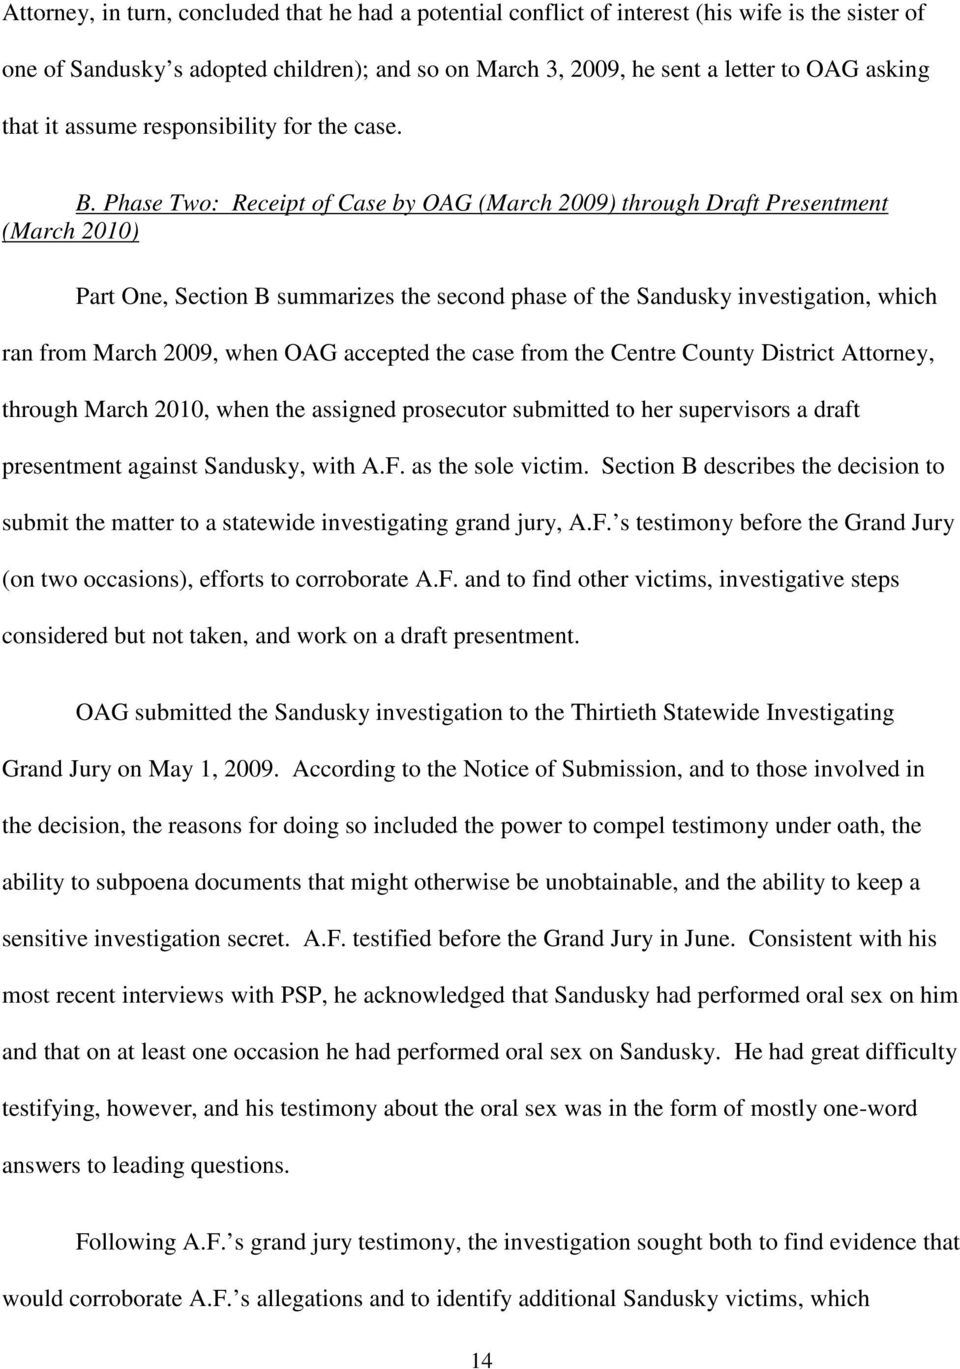 Phase Two: Receipt of Case by OAG (March 2009) through Draft Presentment (March 2010) Part One, Section B summarizes the second phase of the Sandusky investigation, which ran from March 2009, when